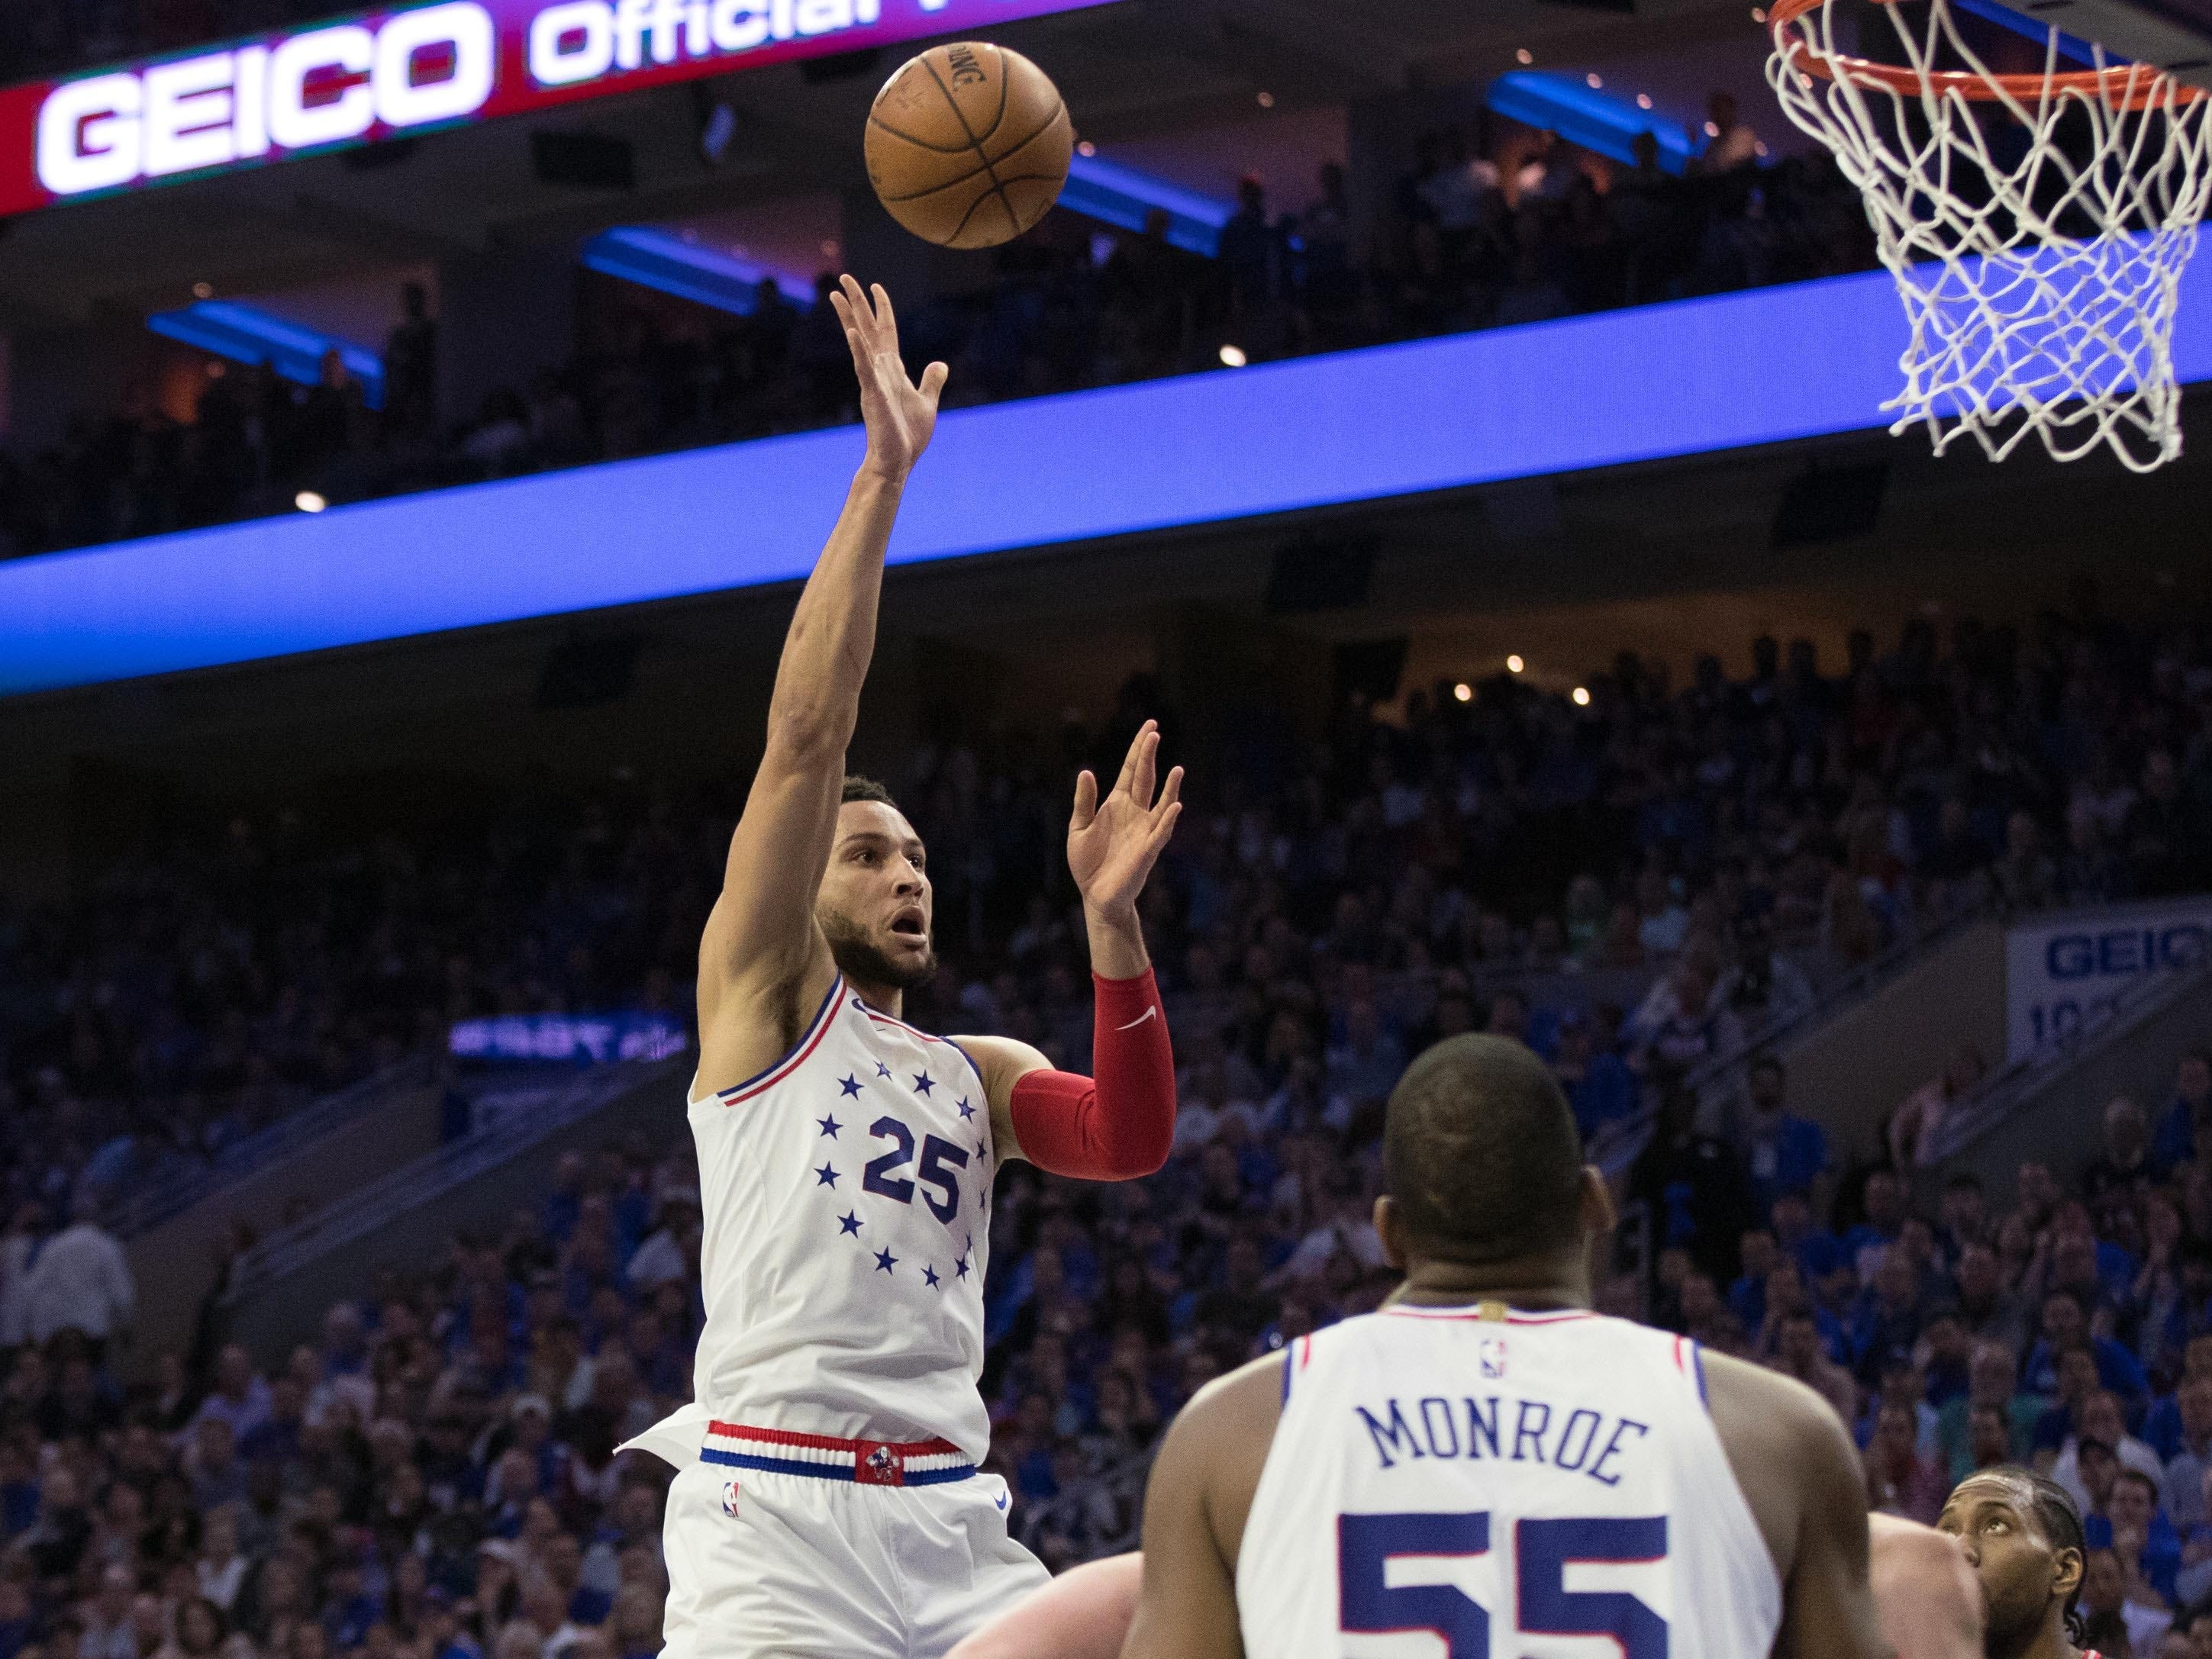 May 2: Sixers guard Ben Simmons (25) drives and shoots during Game 3 against the Raptors.